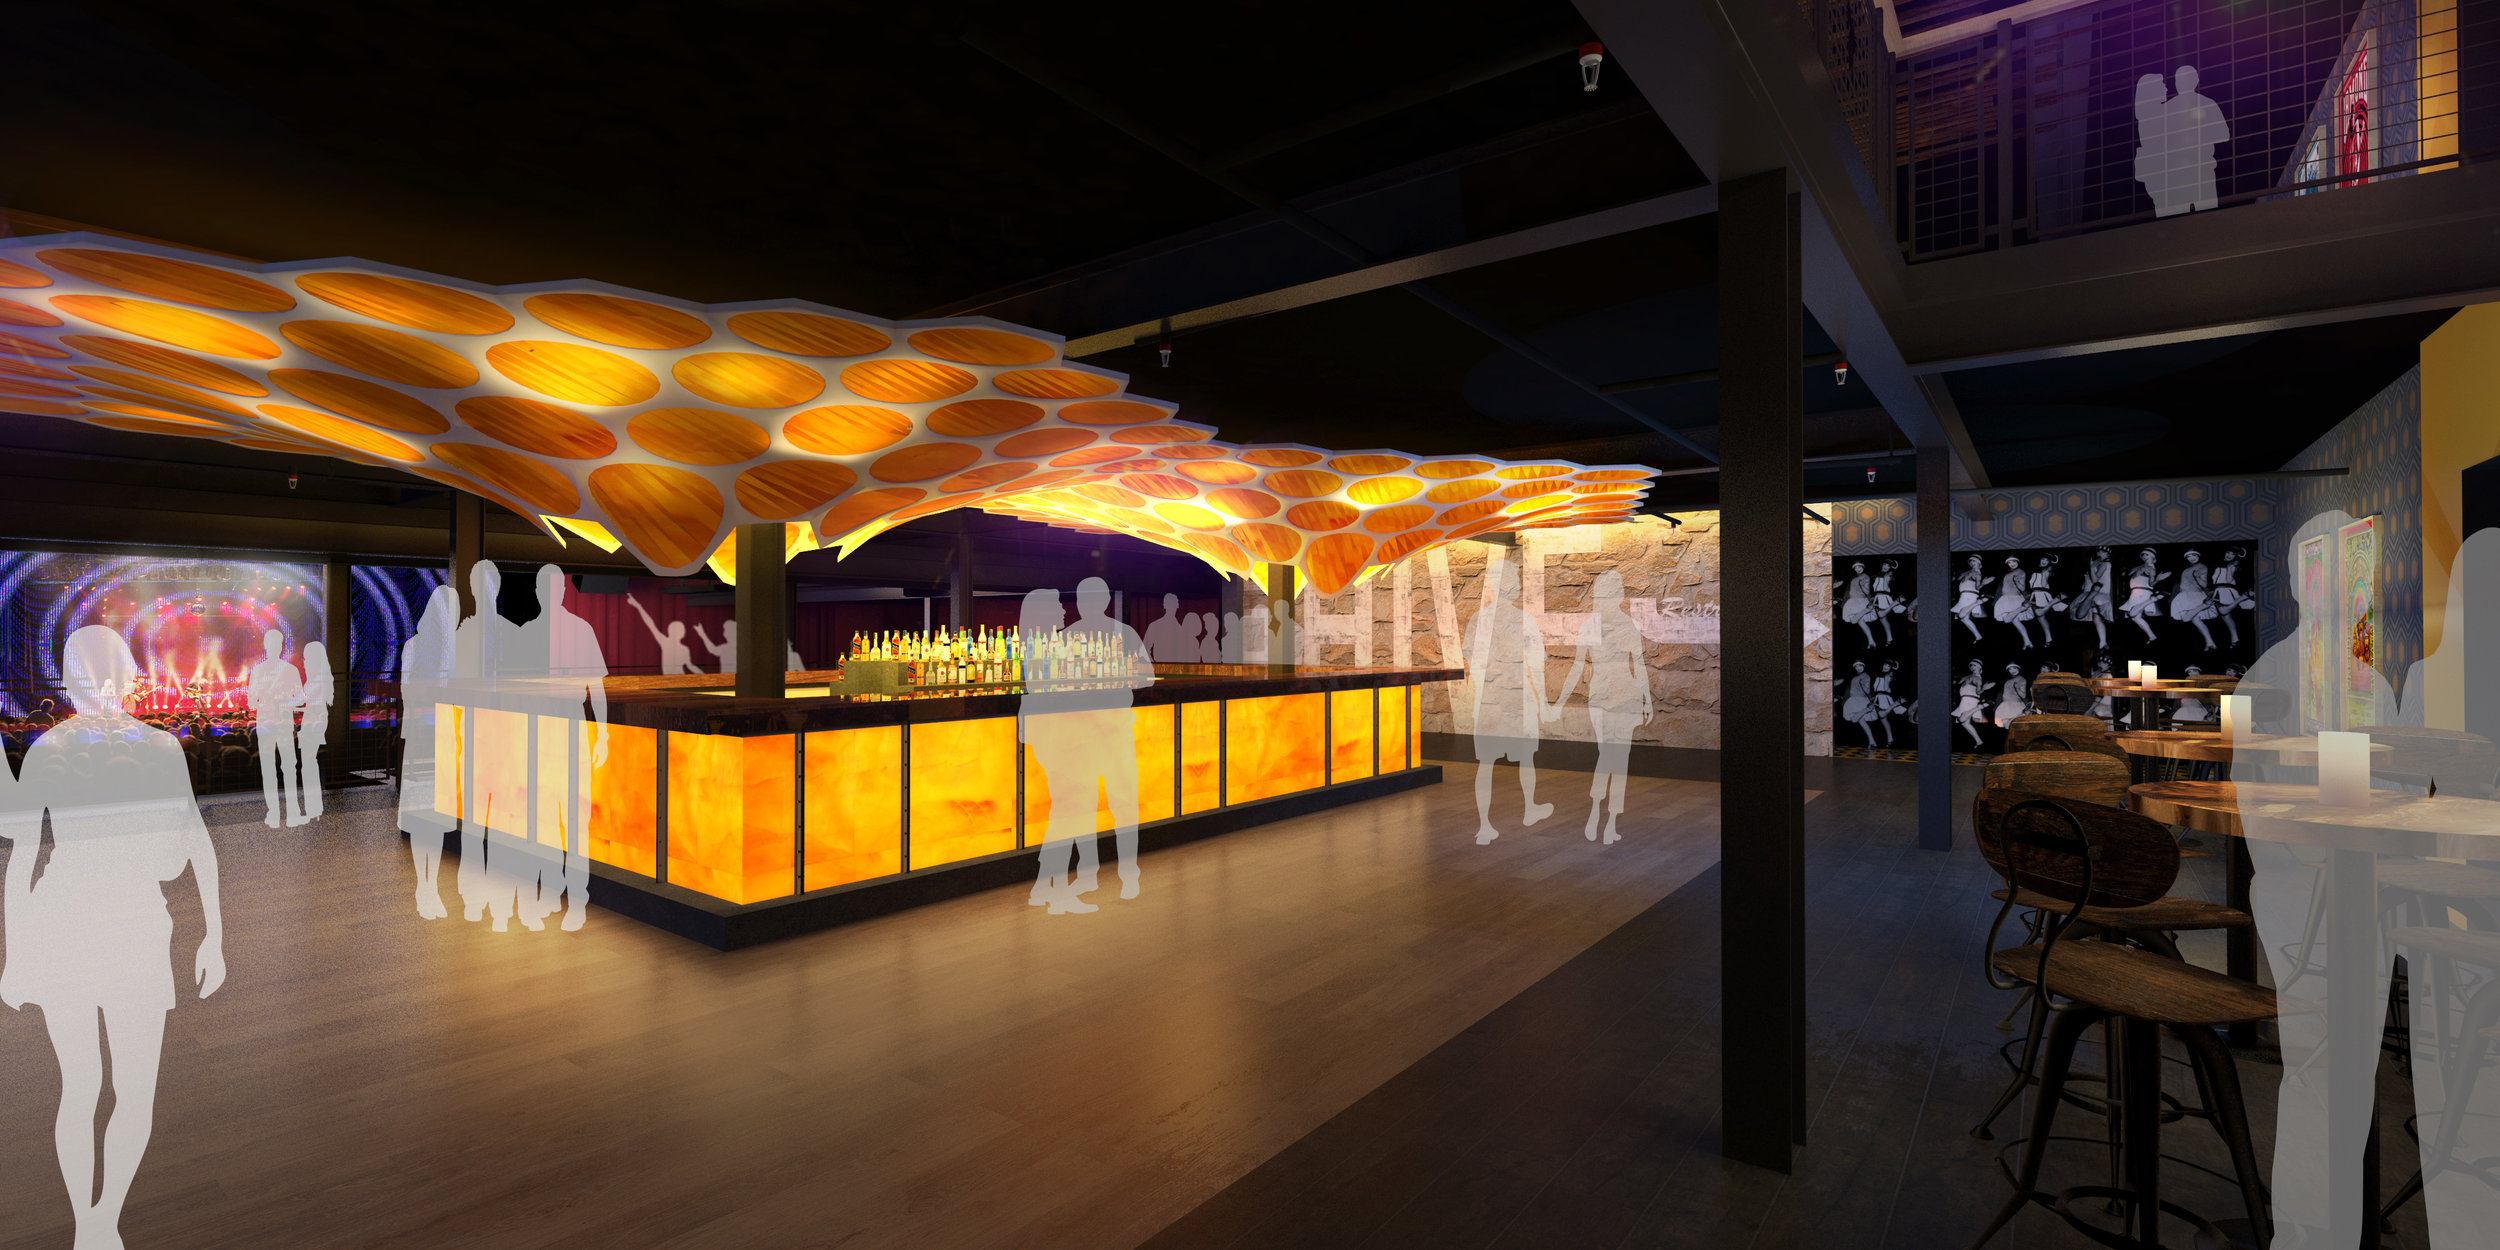 ADW-Entertainment-the-Hive-N.Charleston-SC-Interior-Rendering-Bar-2.jpg